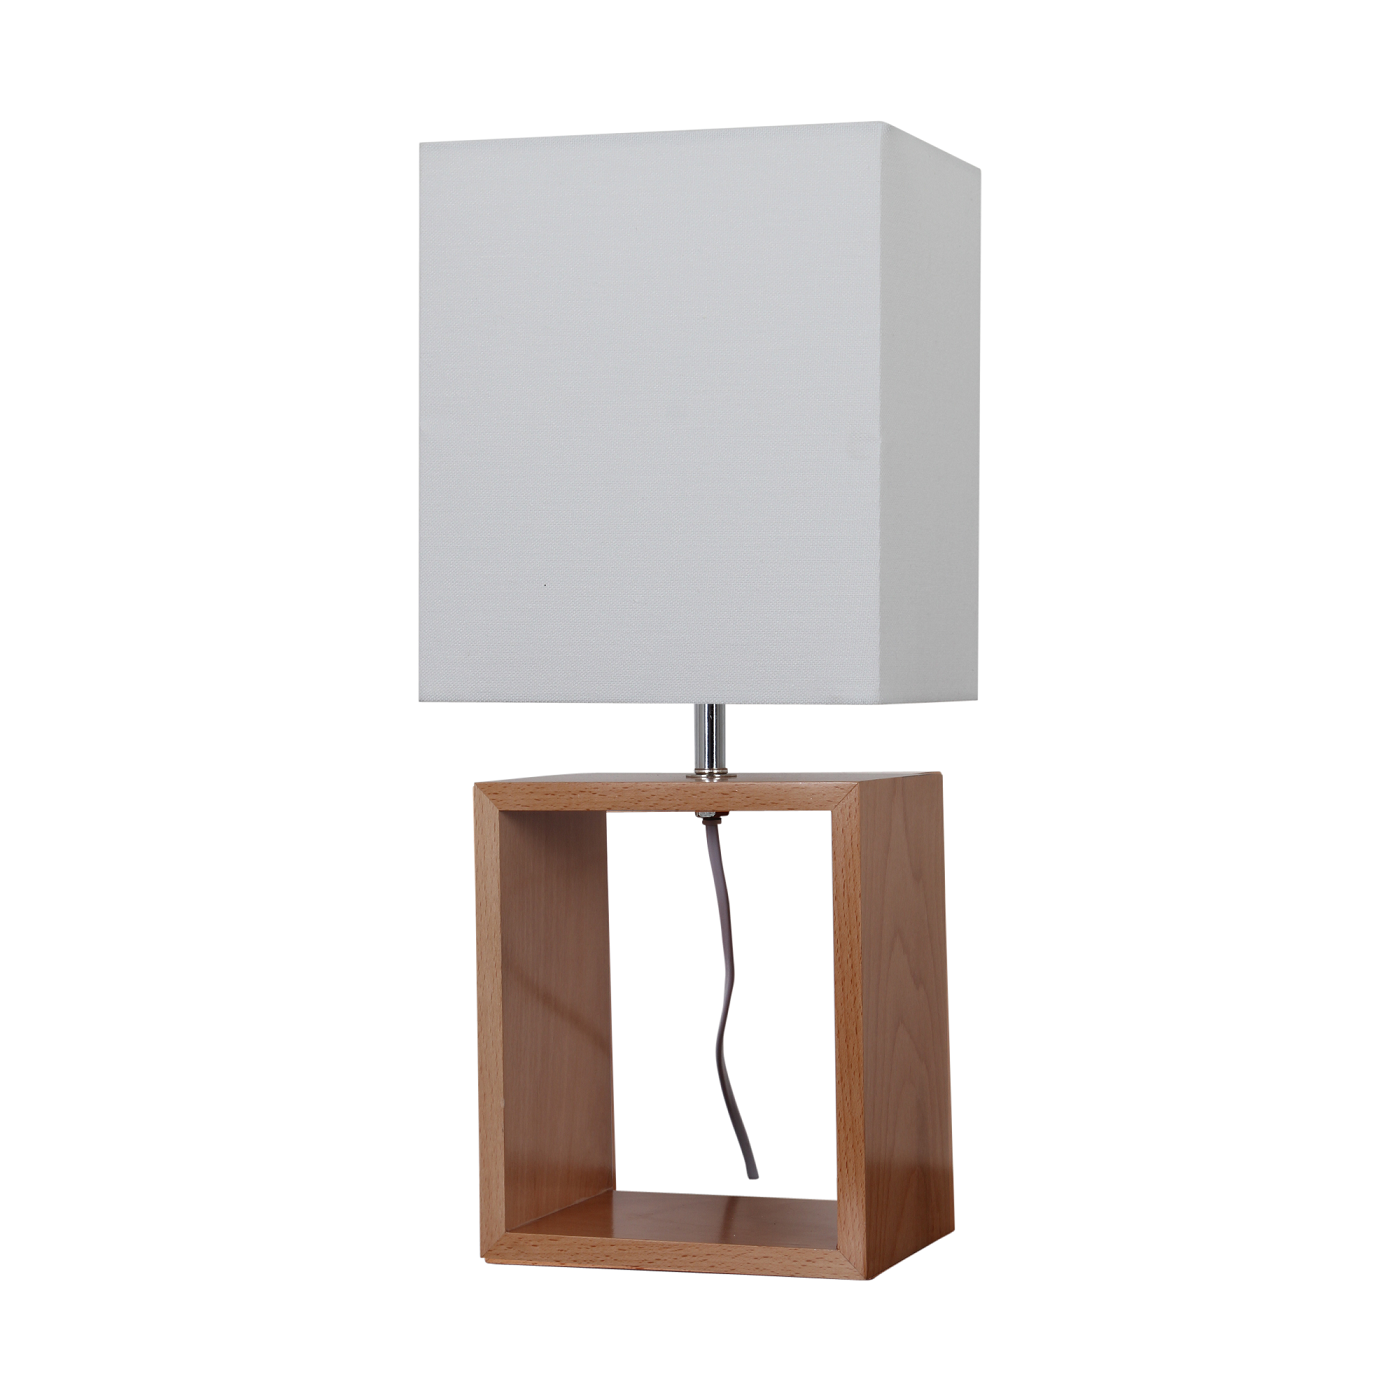 Pair Of Tall Modern Wooden Cube Shaped Bedside Table Lamps